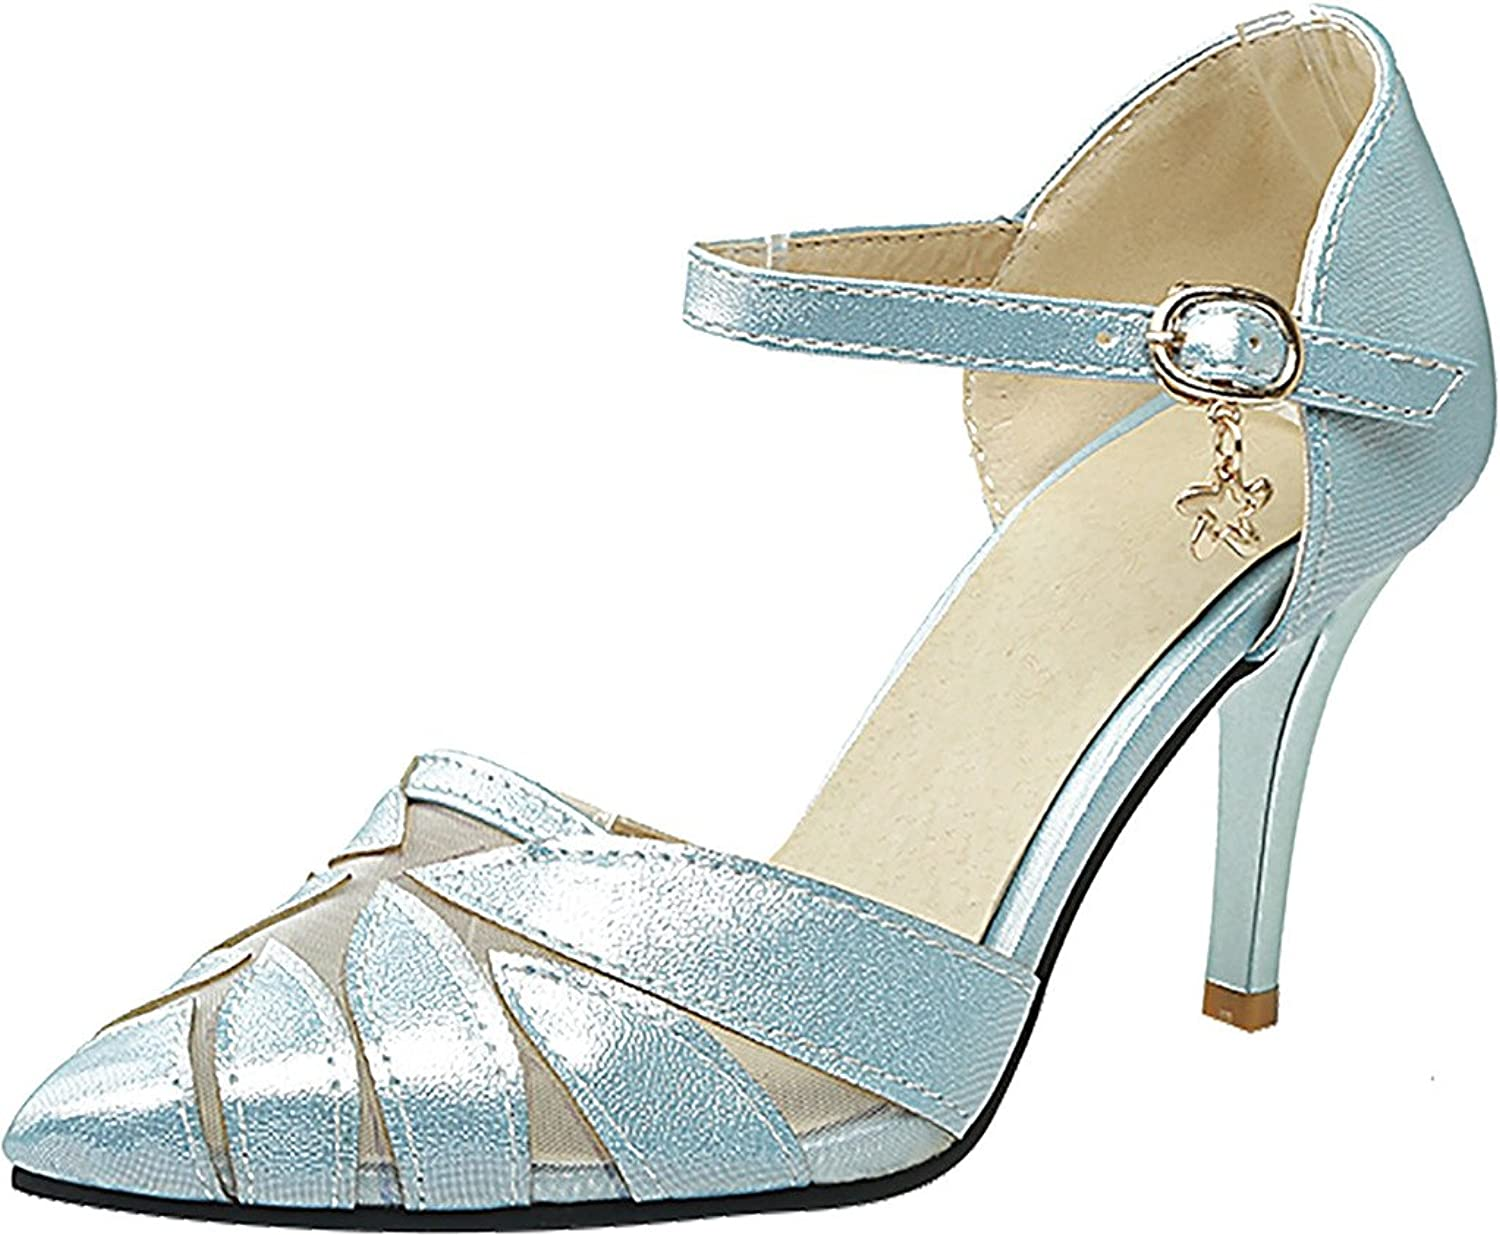 Calaier Womens Salbs Pointed-Toe 8CM Stiletto Buckle Sandals shoes